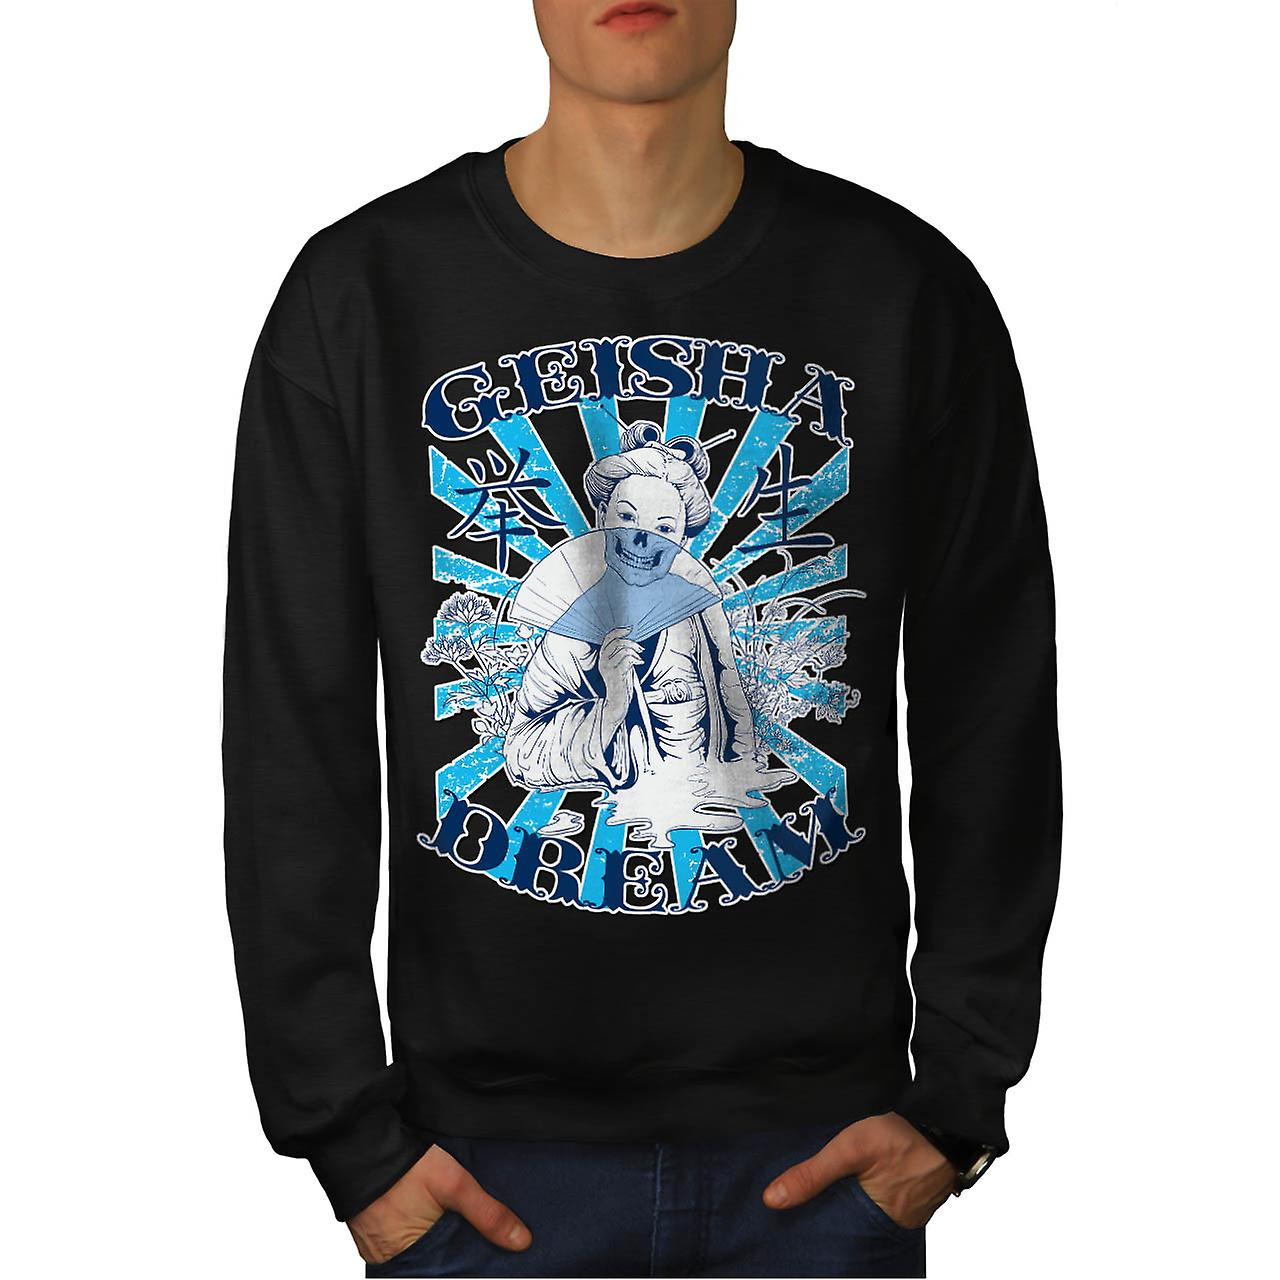 Geisha Dream Dead Fantasy Men Black Sweatshirt | Wellcoda